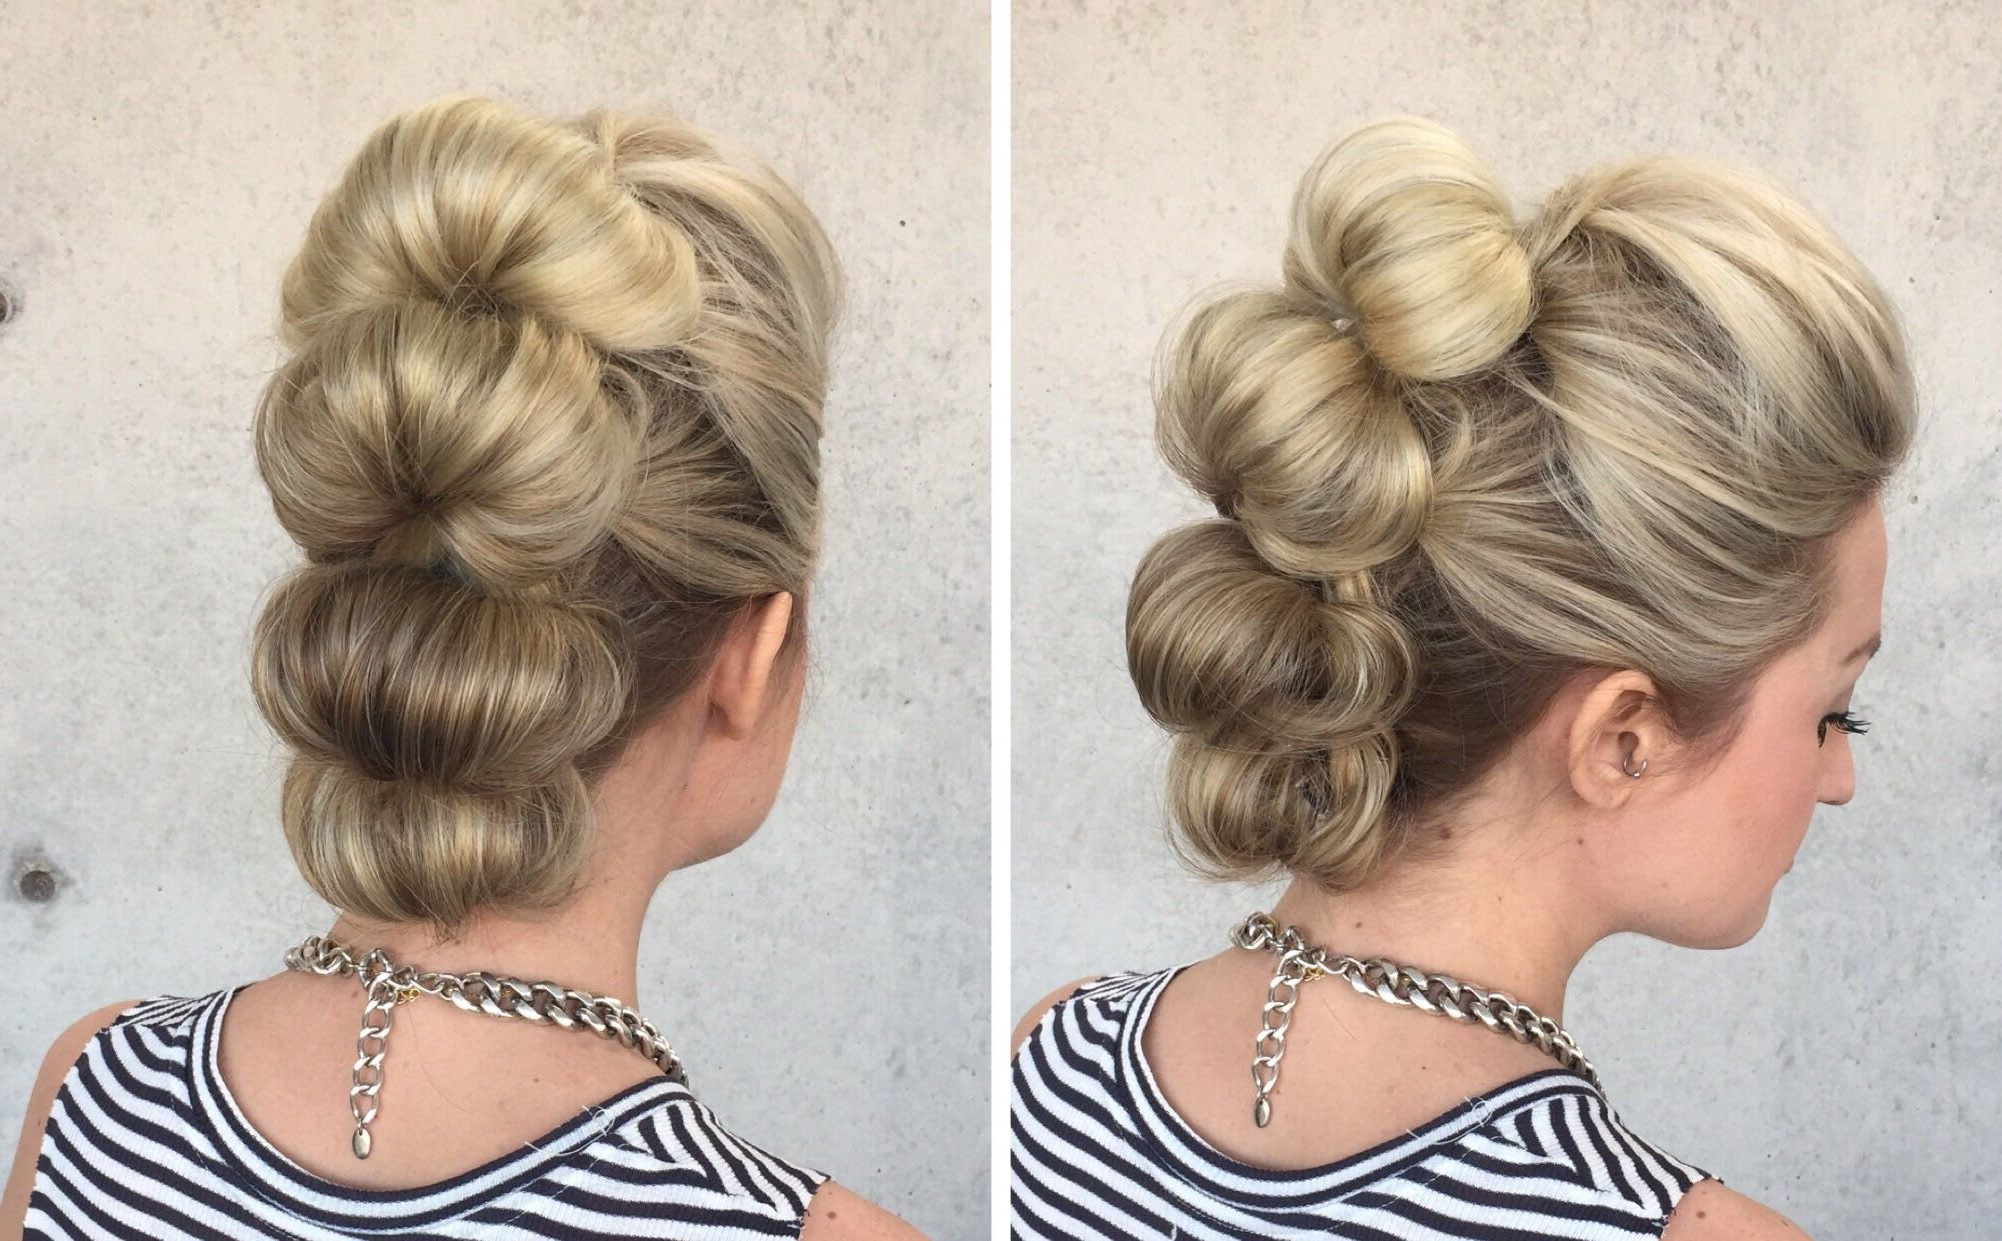 Favorite Unique Updo Faux Hawk Hairstyles Throughout Topsy Tail Loop Faux Hawk Hair Tutorial (View 8 of 20)